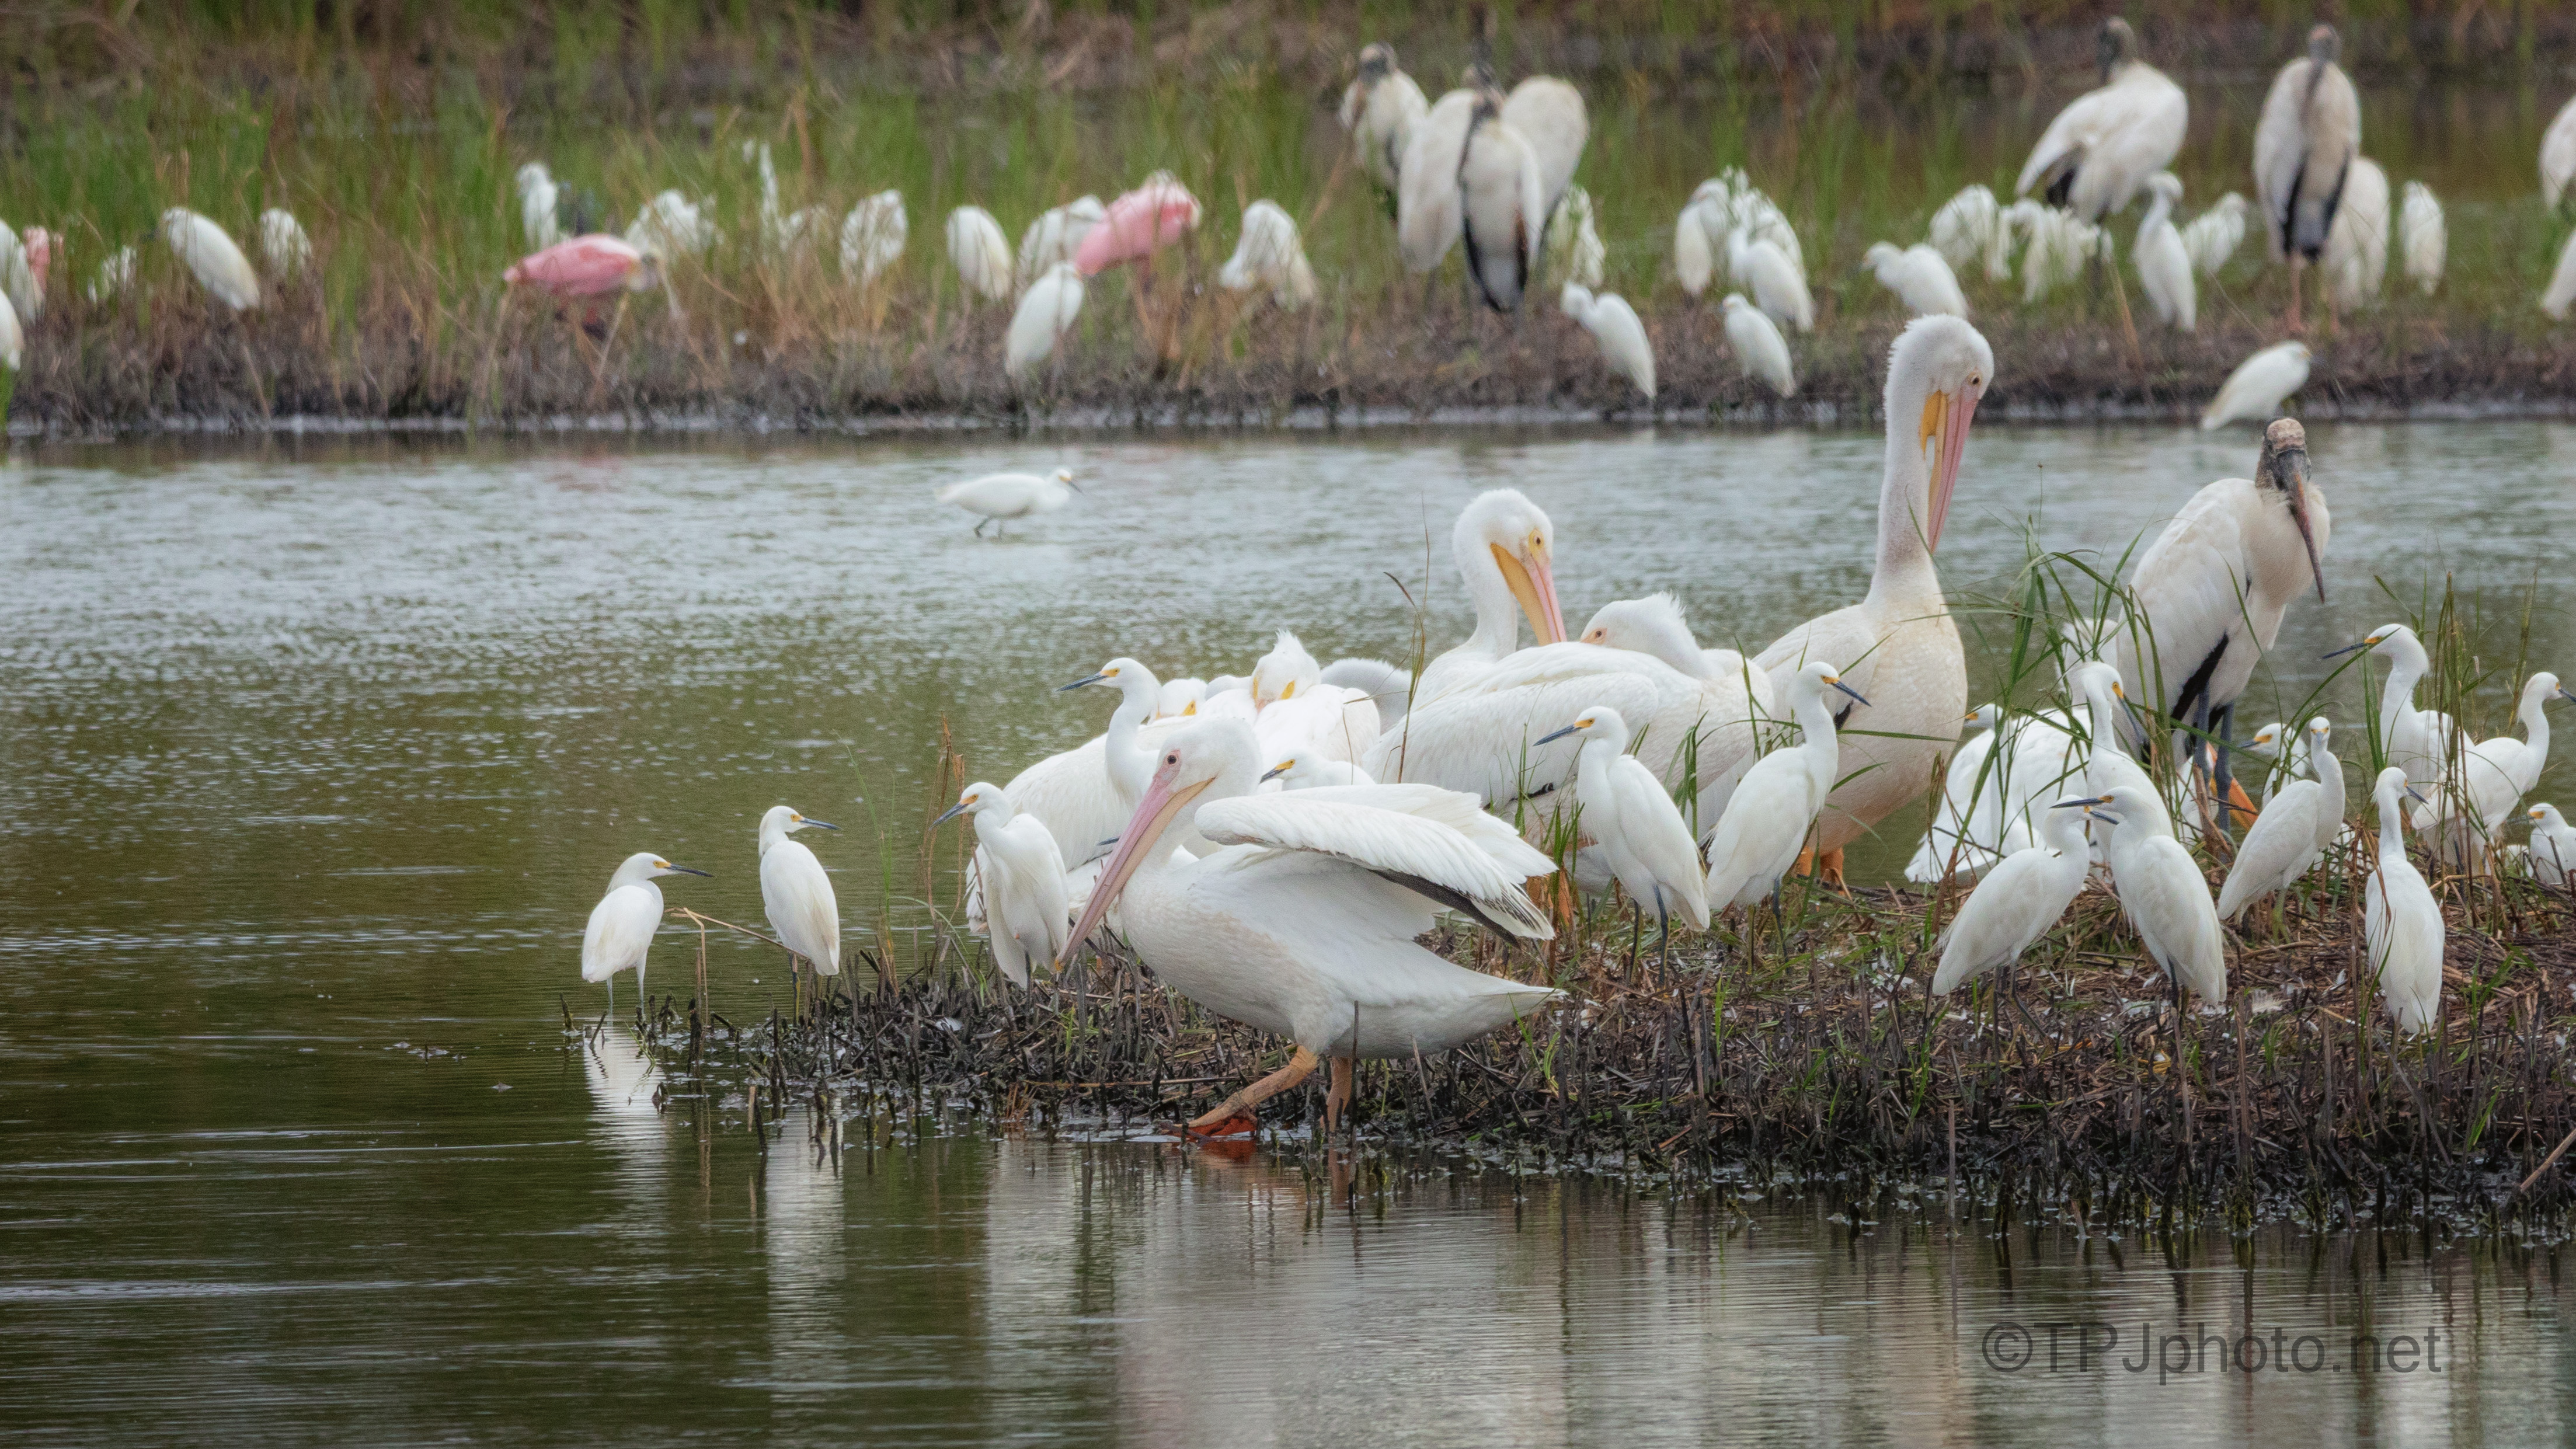 Too Crowded, Pelican